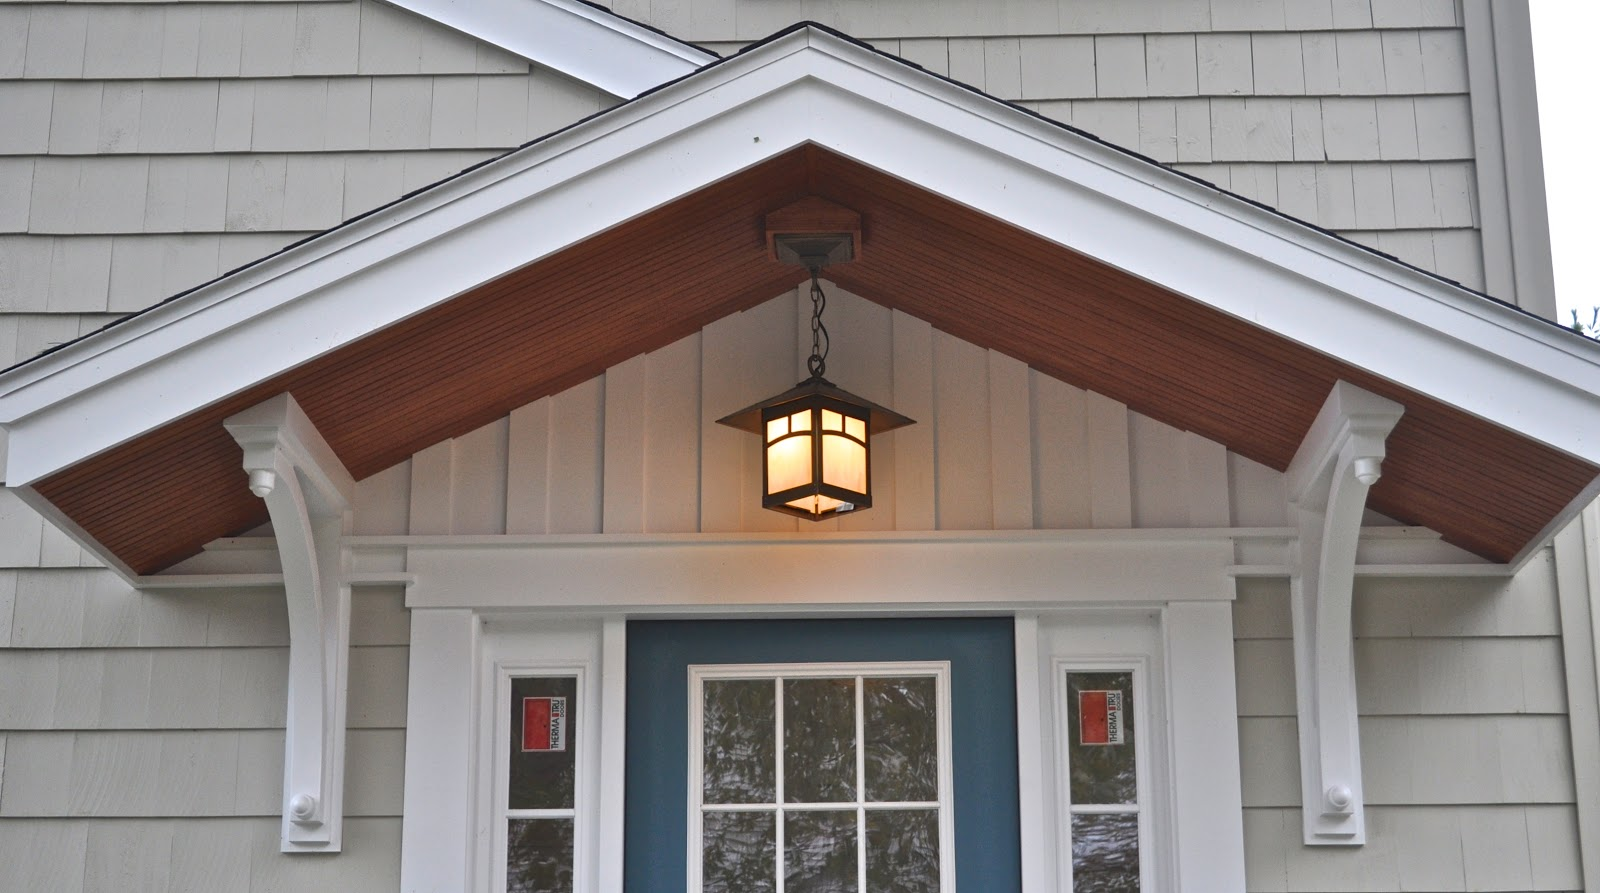 SoPo Cottage: Sunset 4:27 pm.....Good Thing We Have Lights!